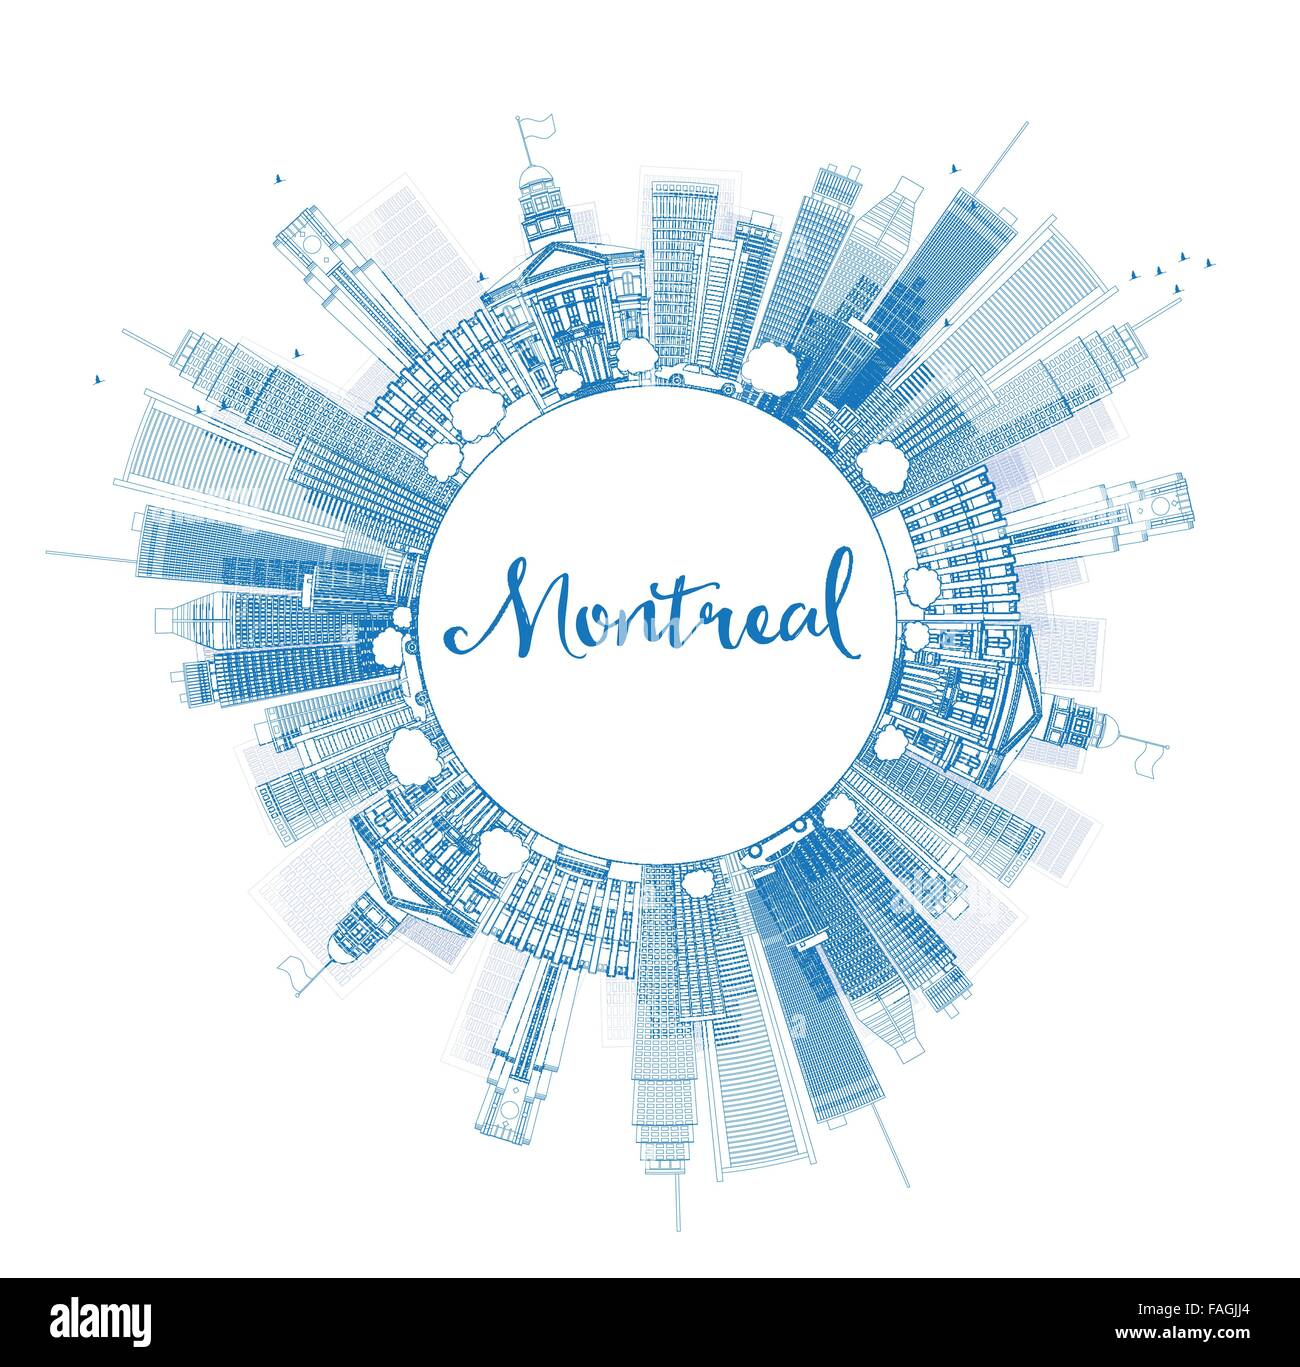 Montreal Cut Out Stock Images & Pictures - Alamy